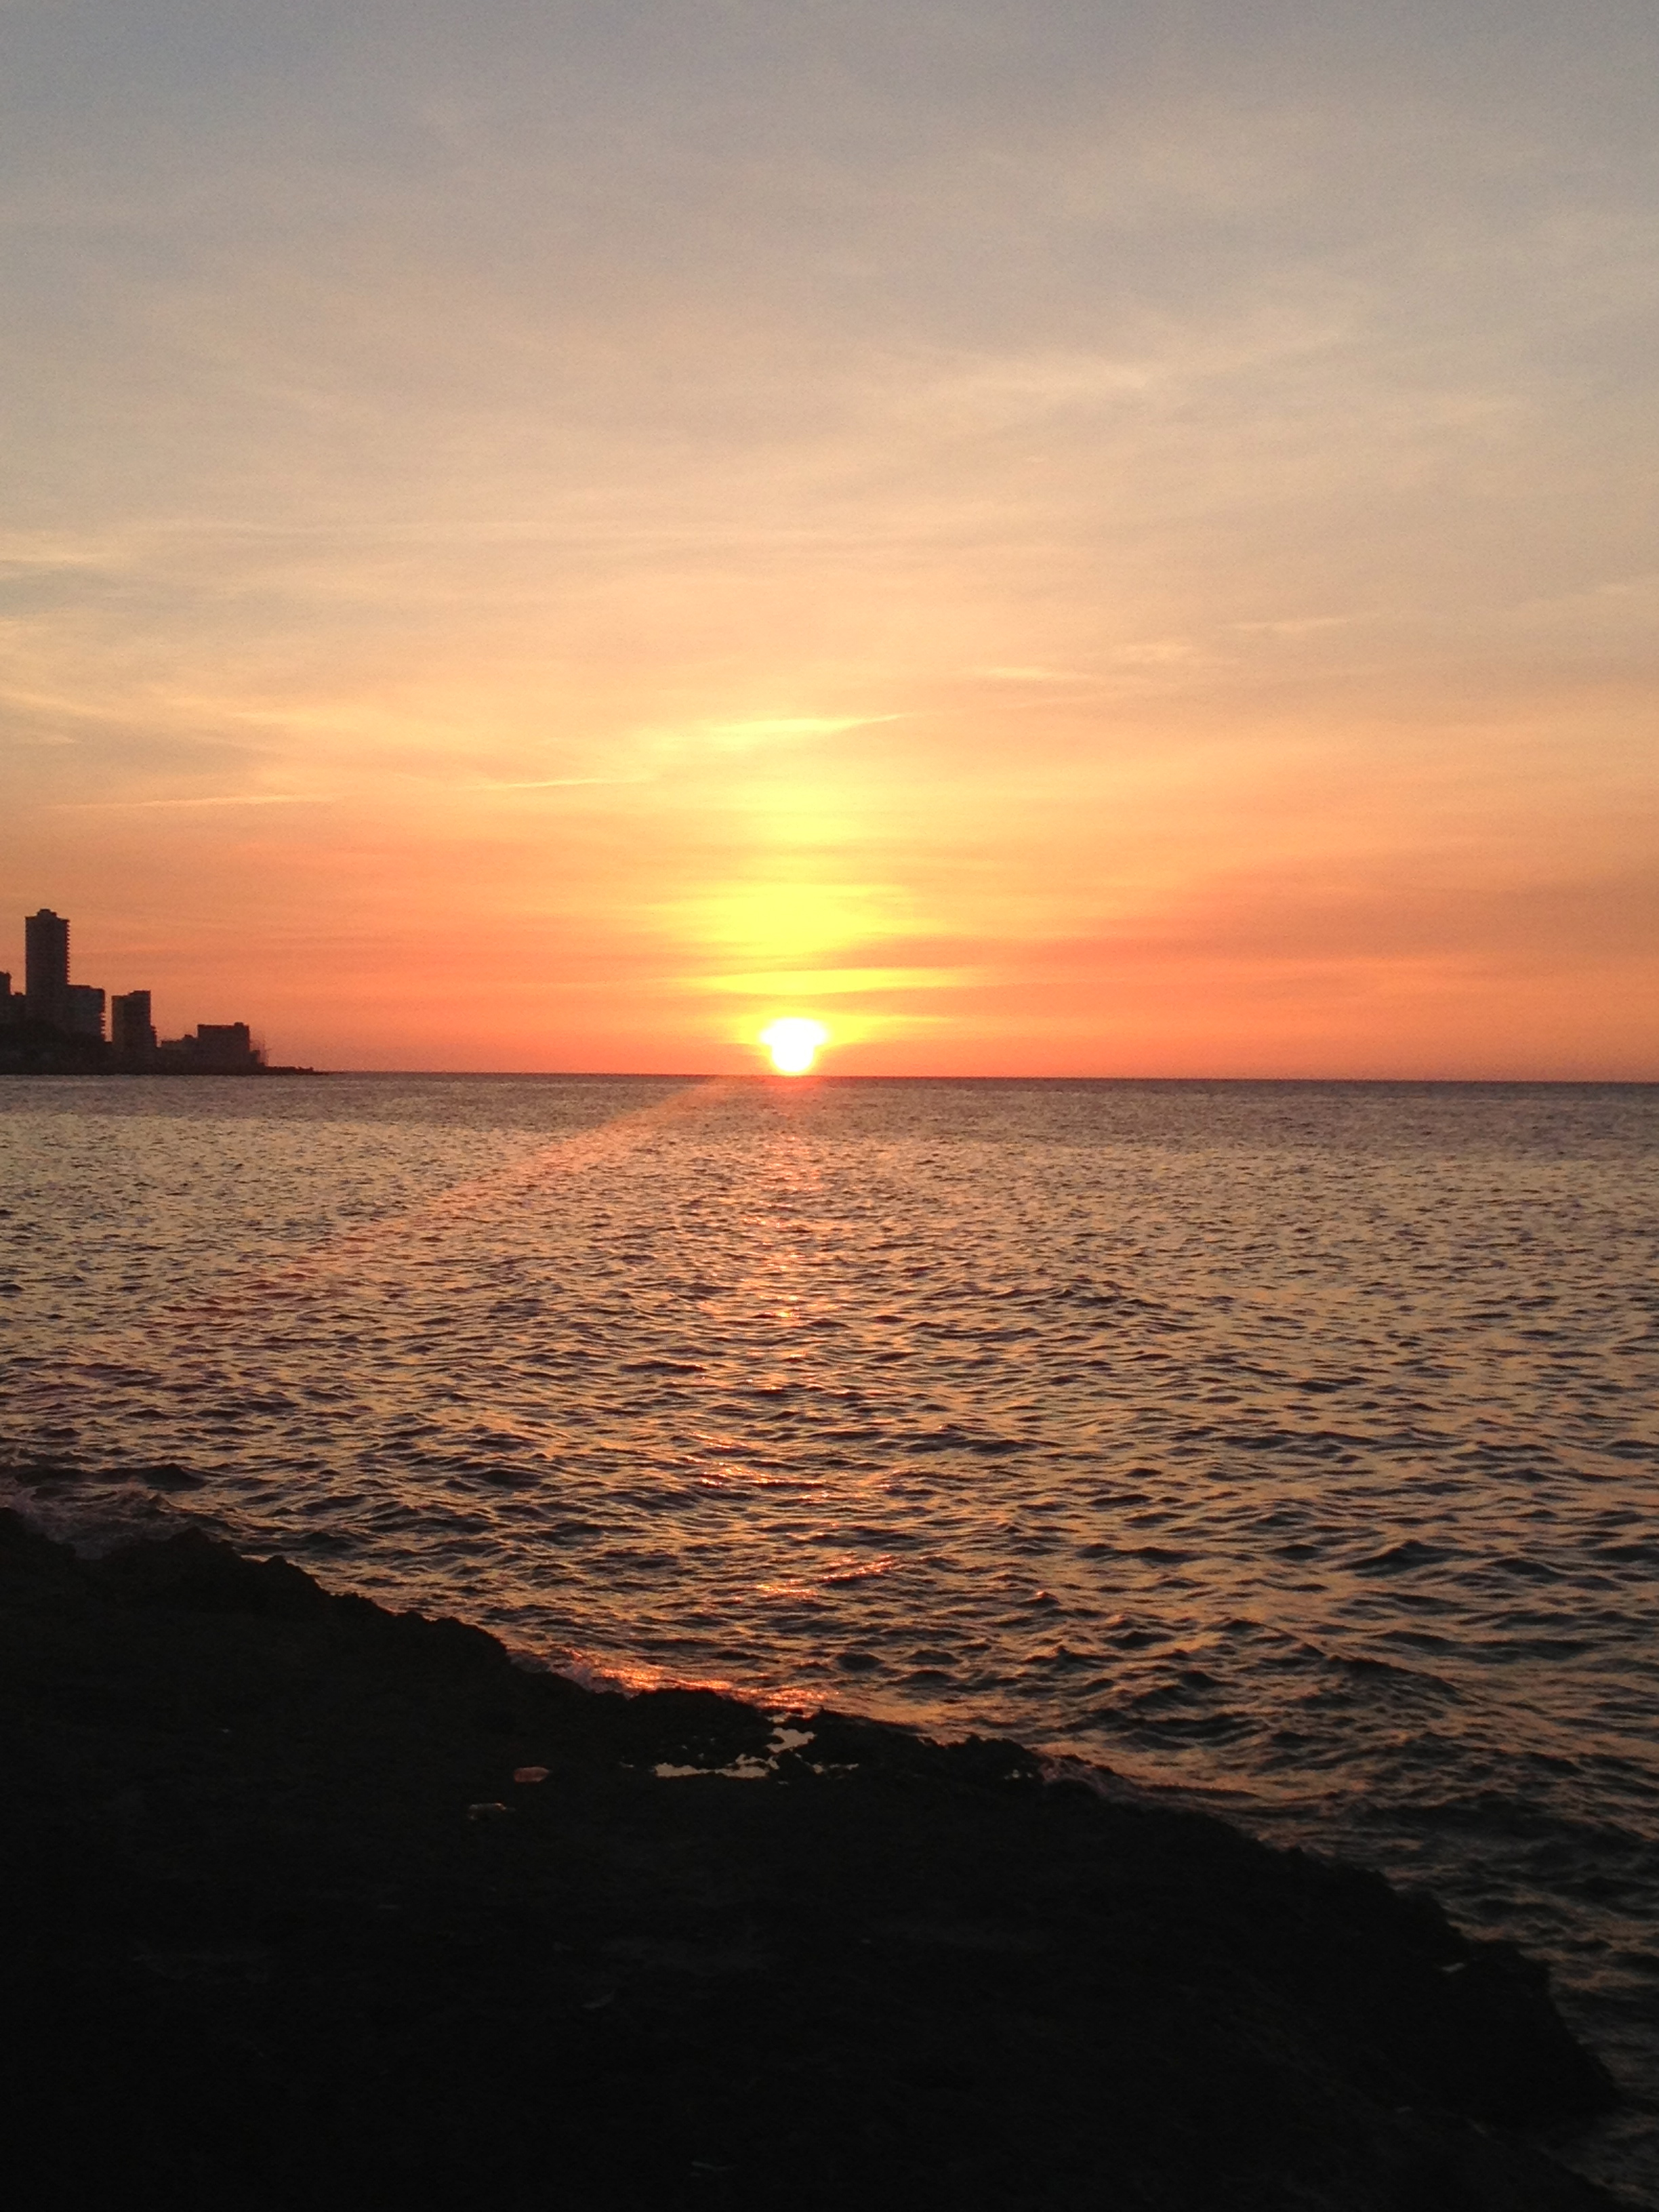 Sunset from the Malecón, La Habana, Cuba.